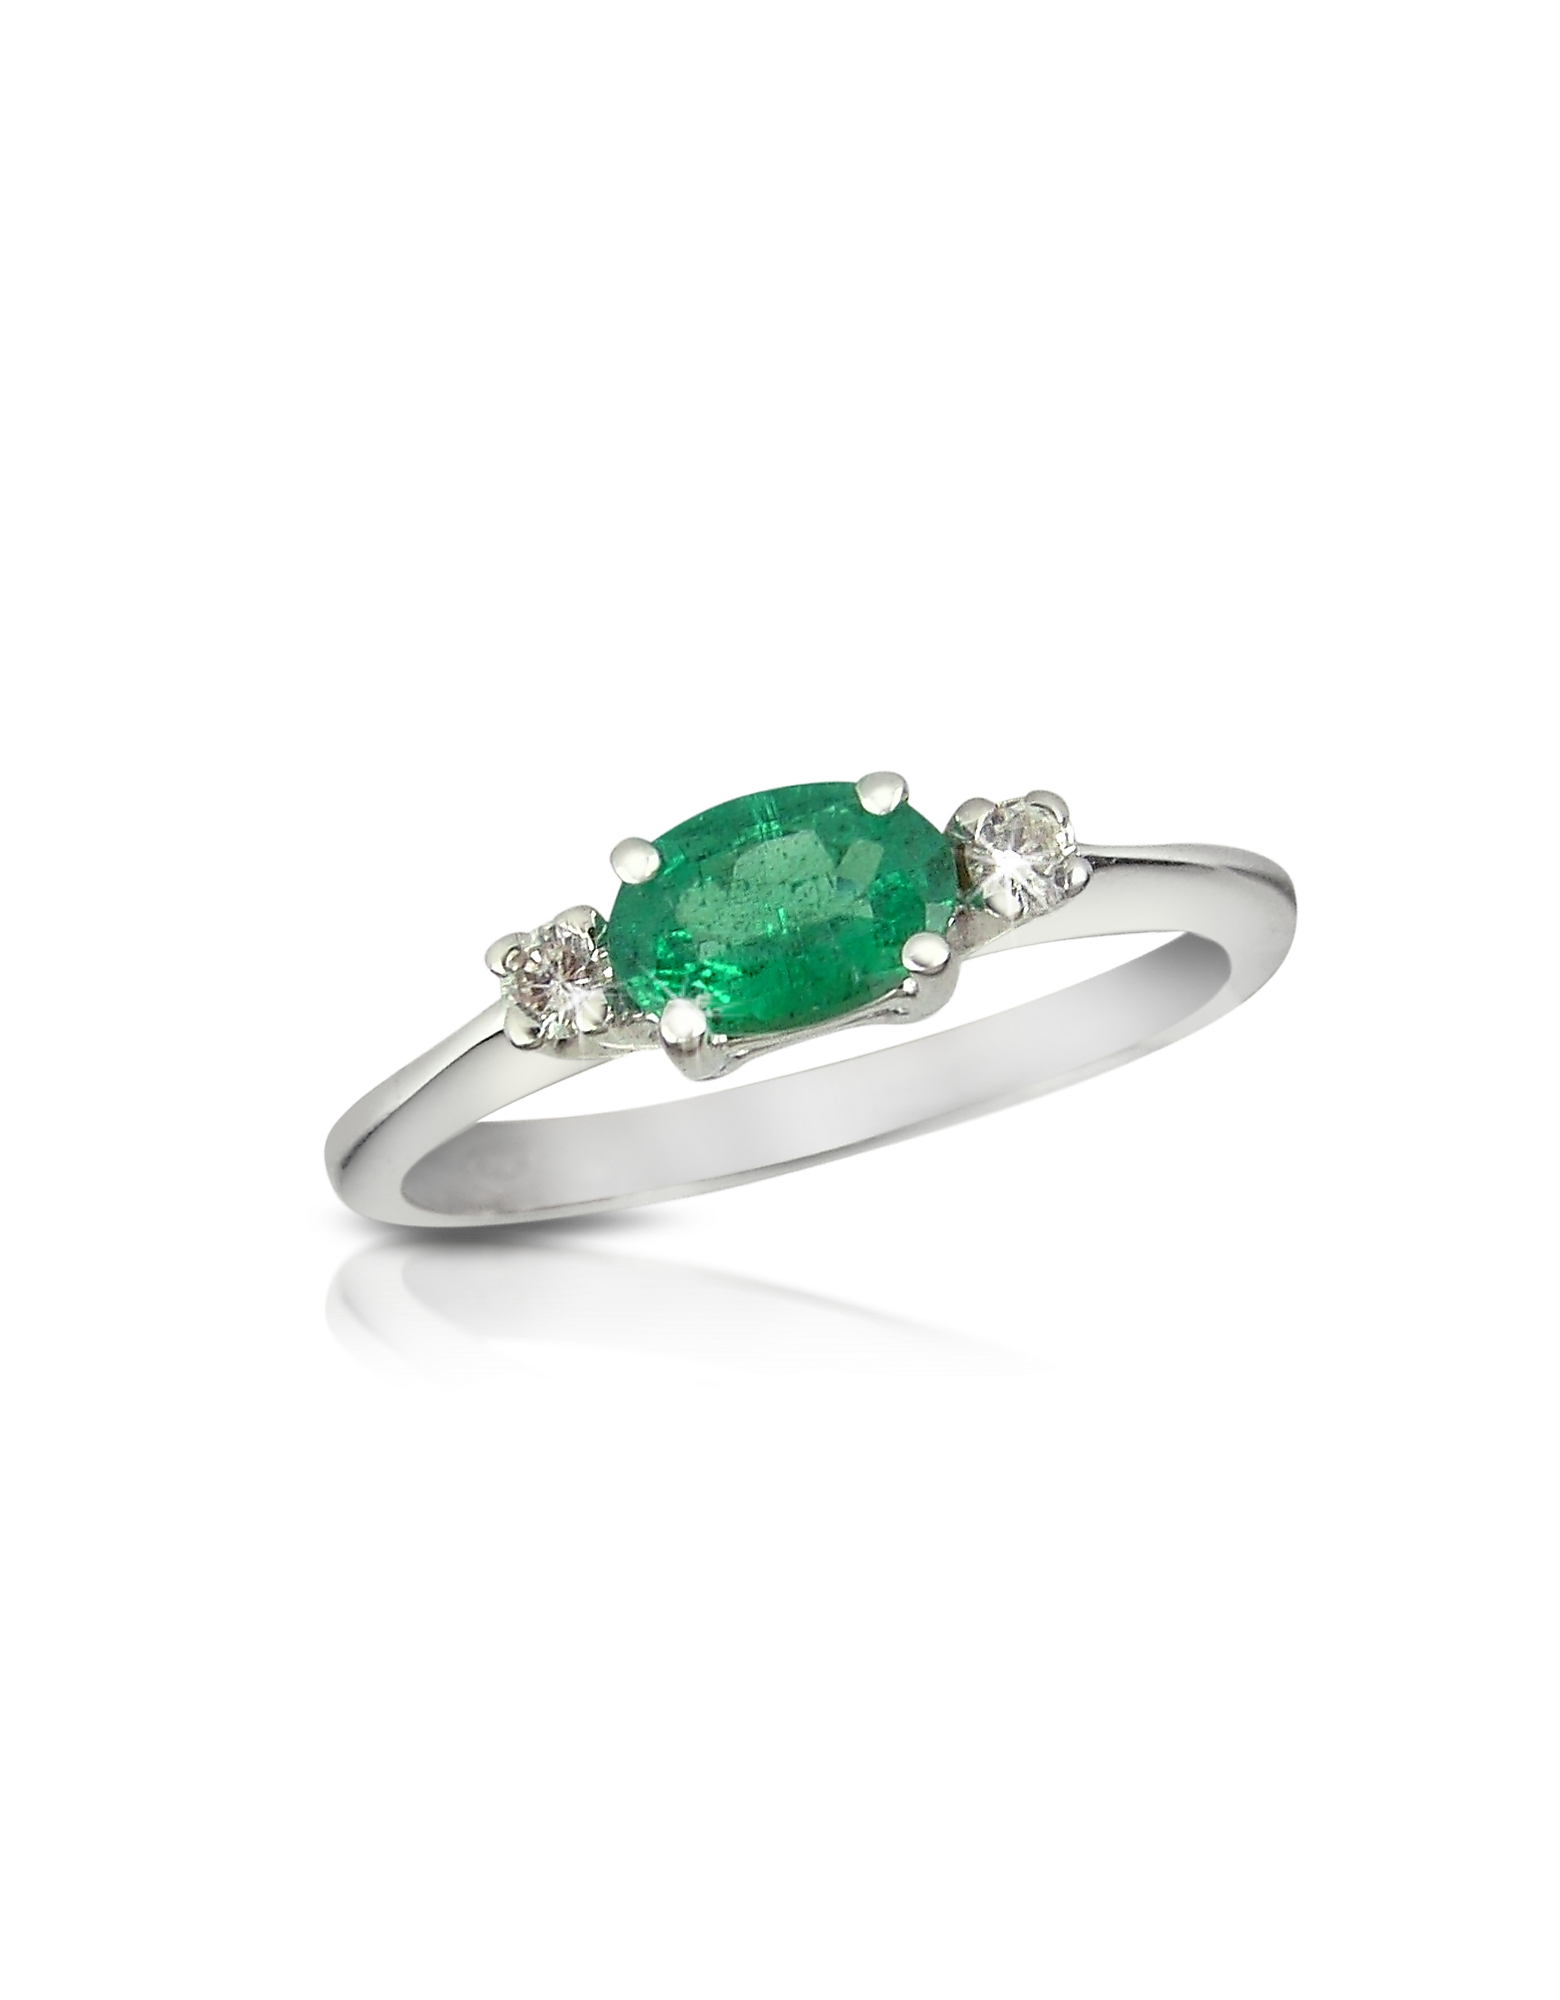 Incanto Royale Rings, Emerald and Diamond 18K Gold Ring